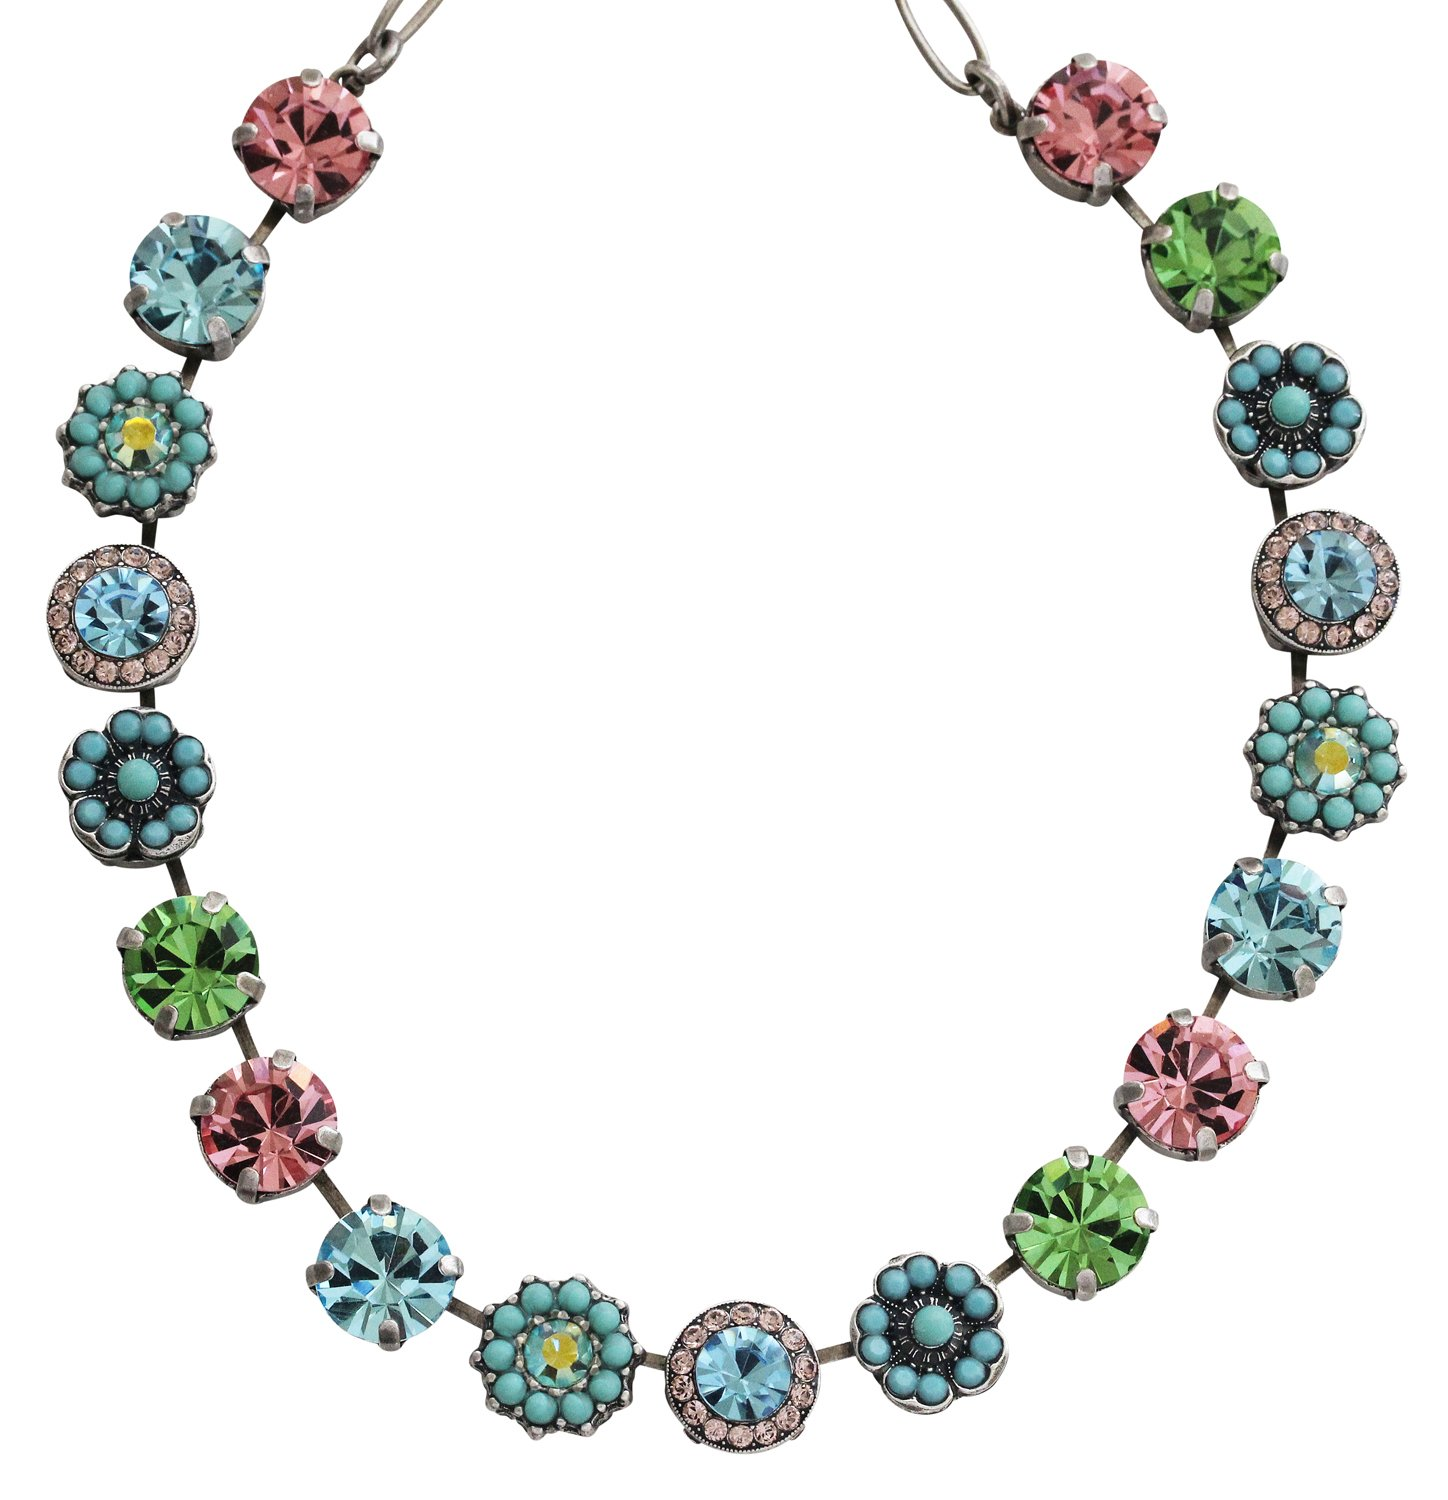 Mariana Silvertone Large Flower Shapes Crystal Necklace, ''Summer Fun'' Blue Pink Multi Color 3084 3711